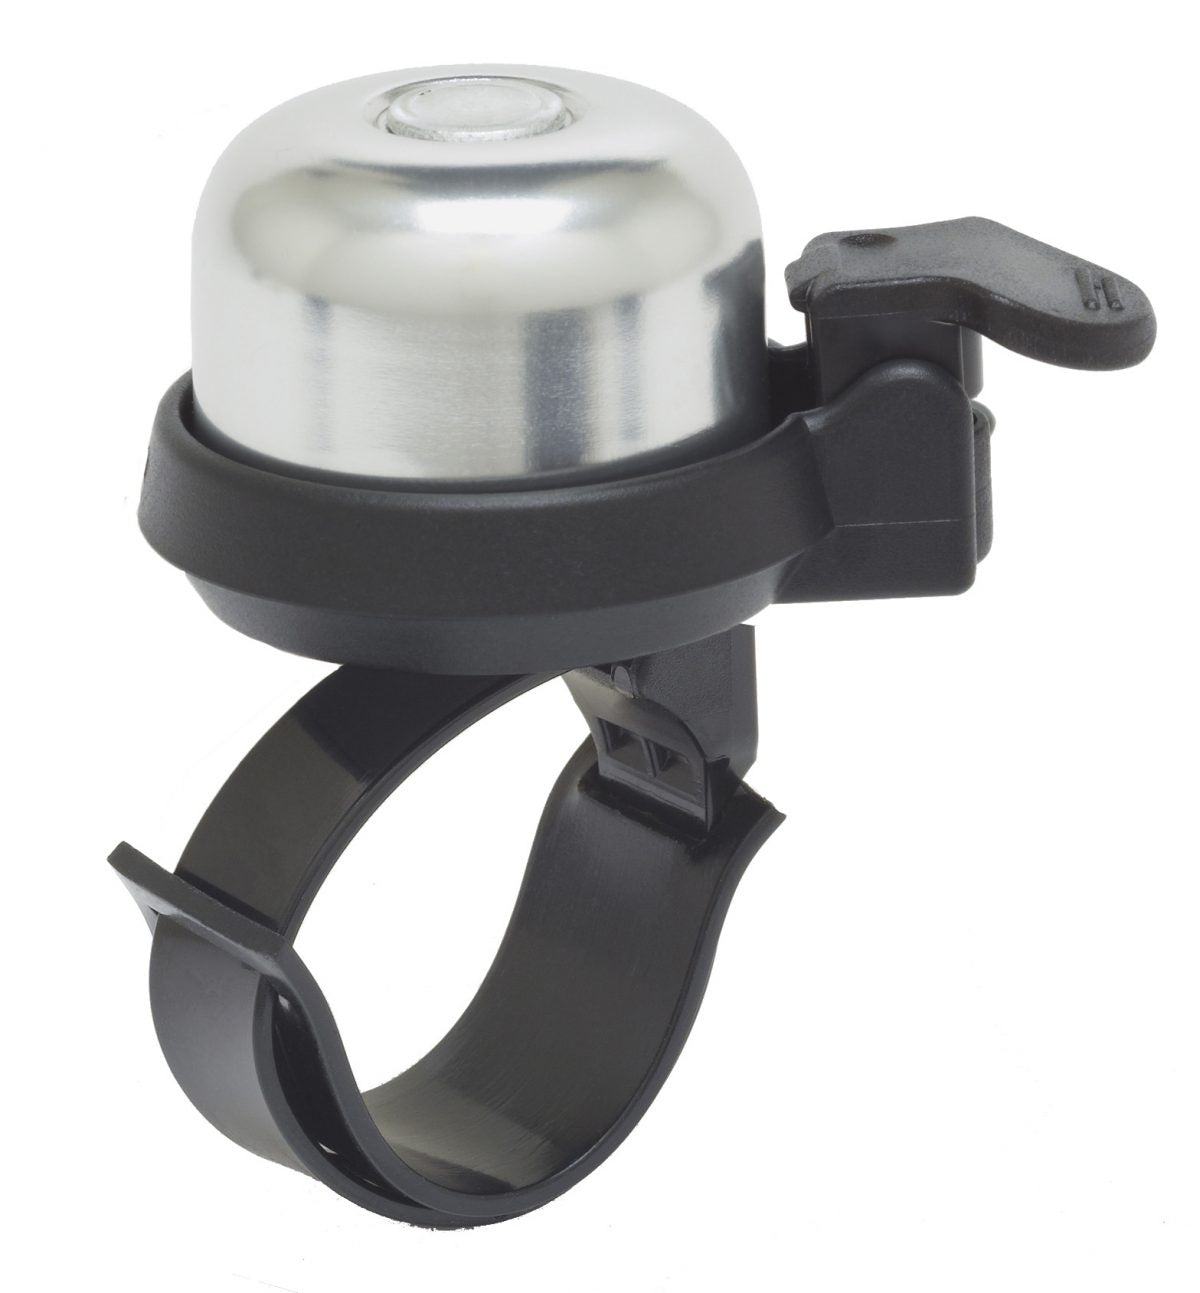 Incredibell Adjustabell 2, Silver